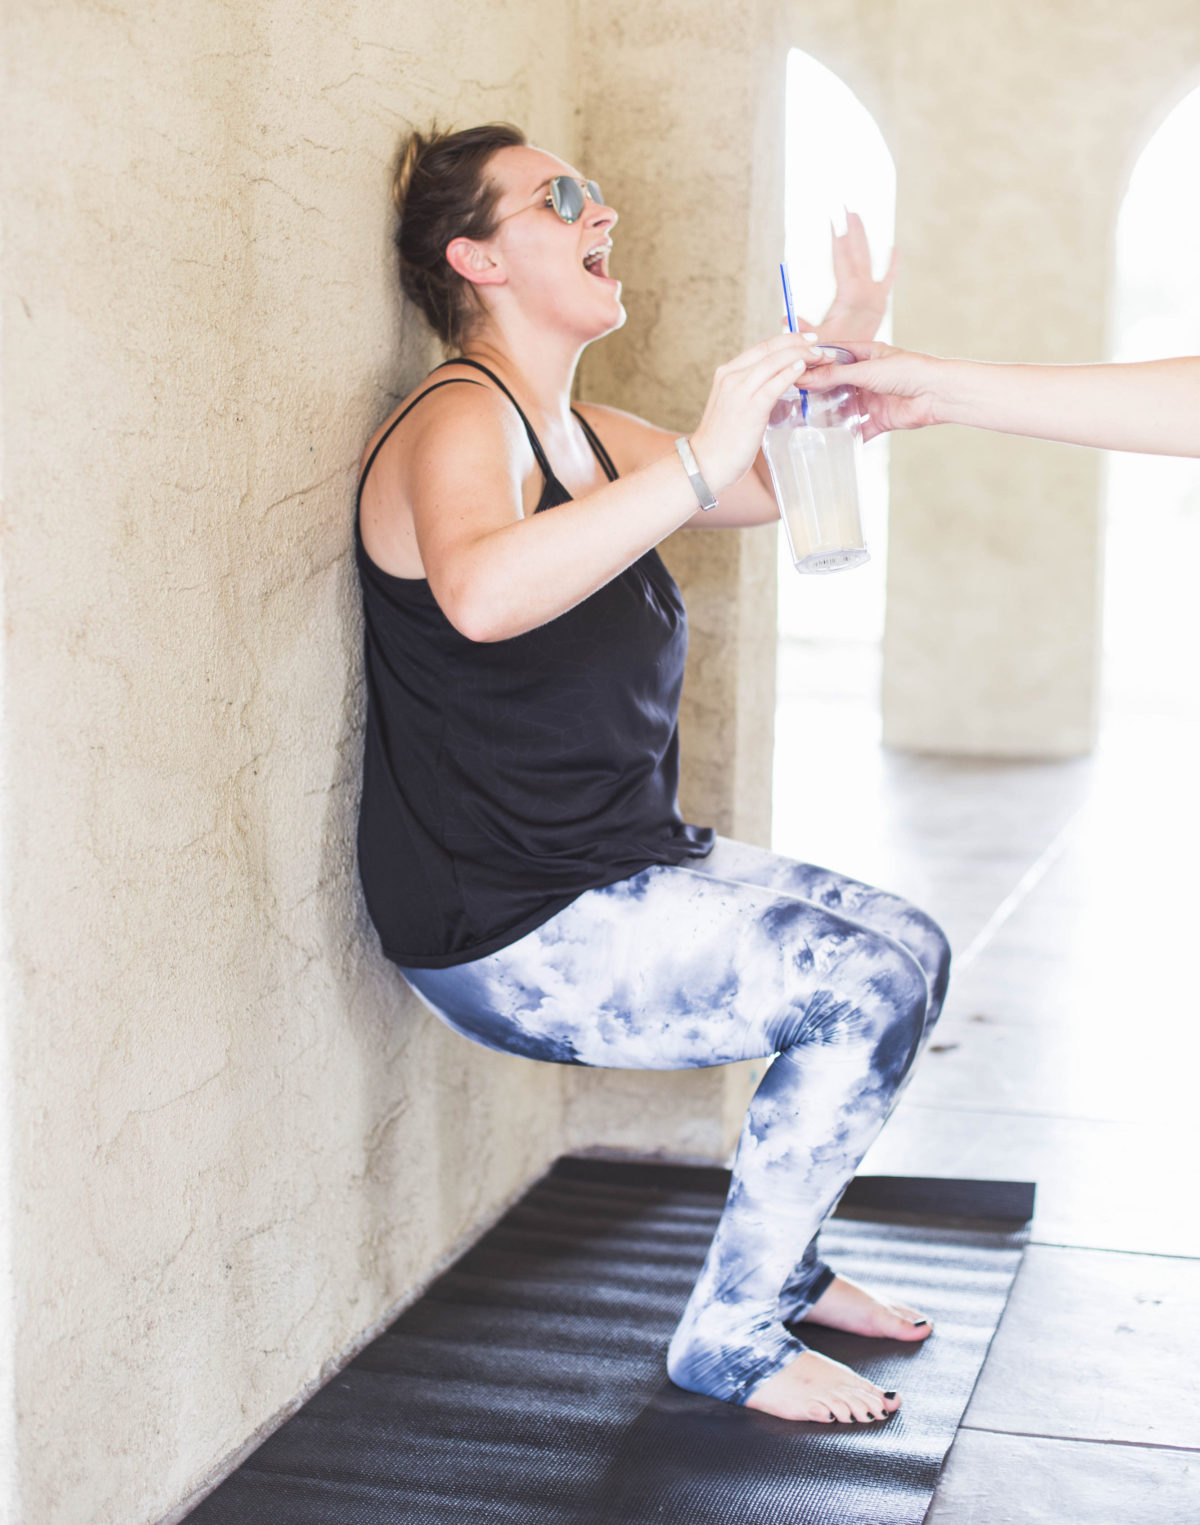 View More: http://madisonkatlinphotography.pass.us/susie-o--workout